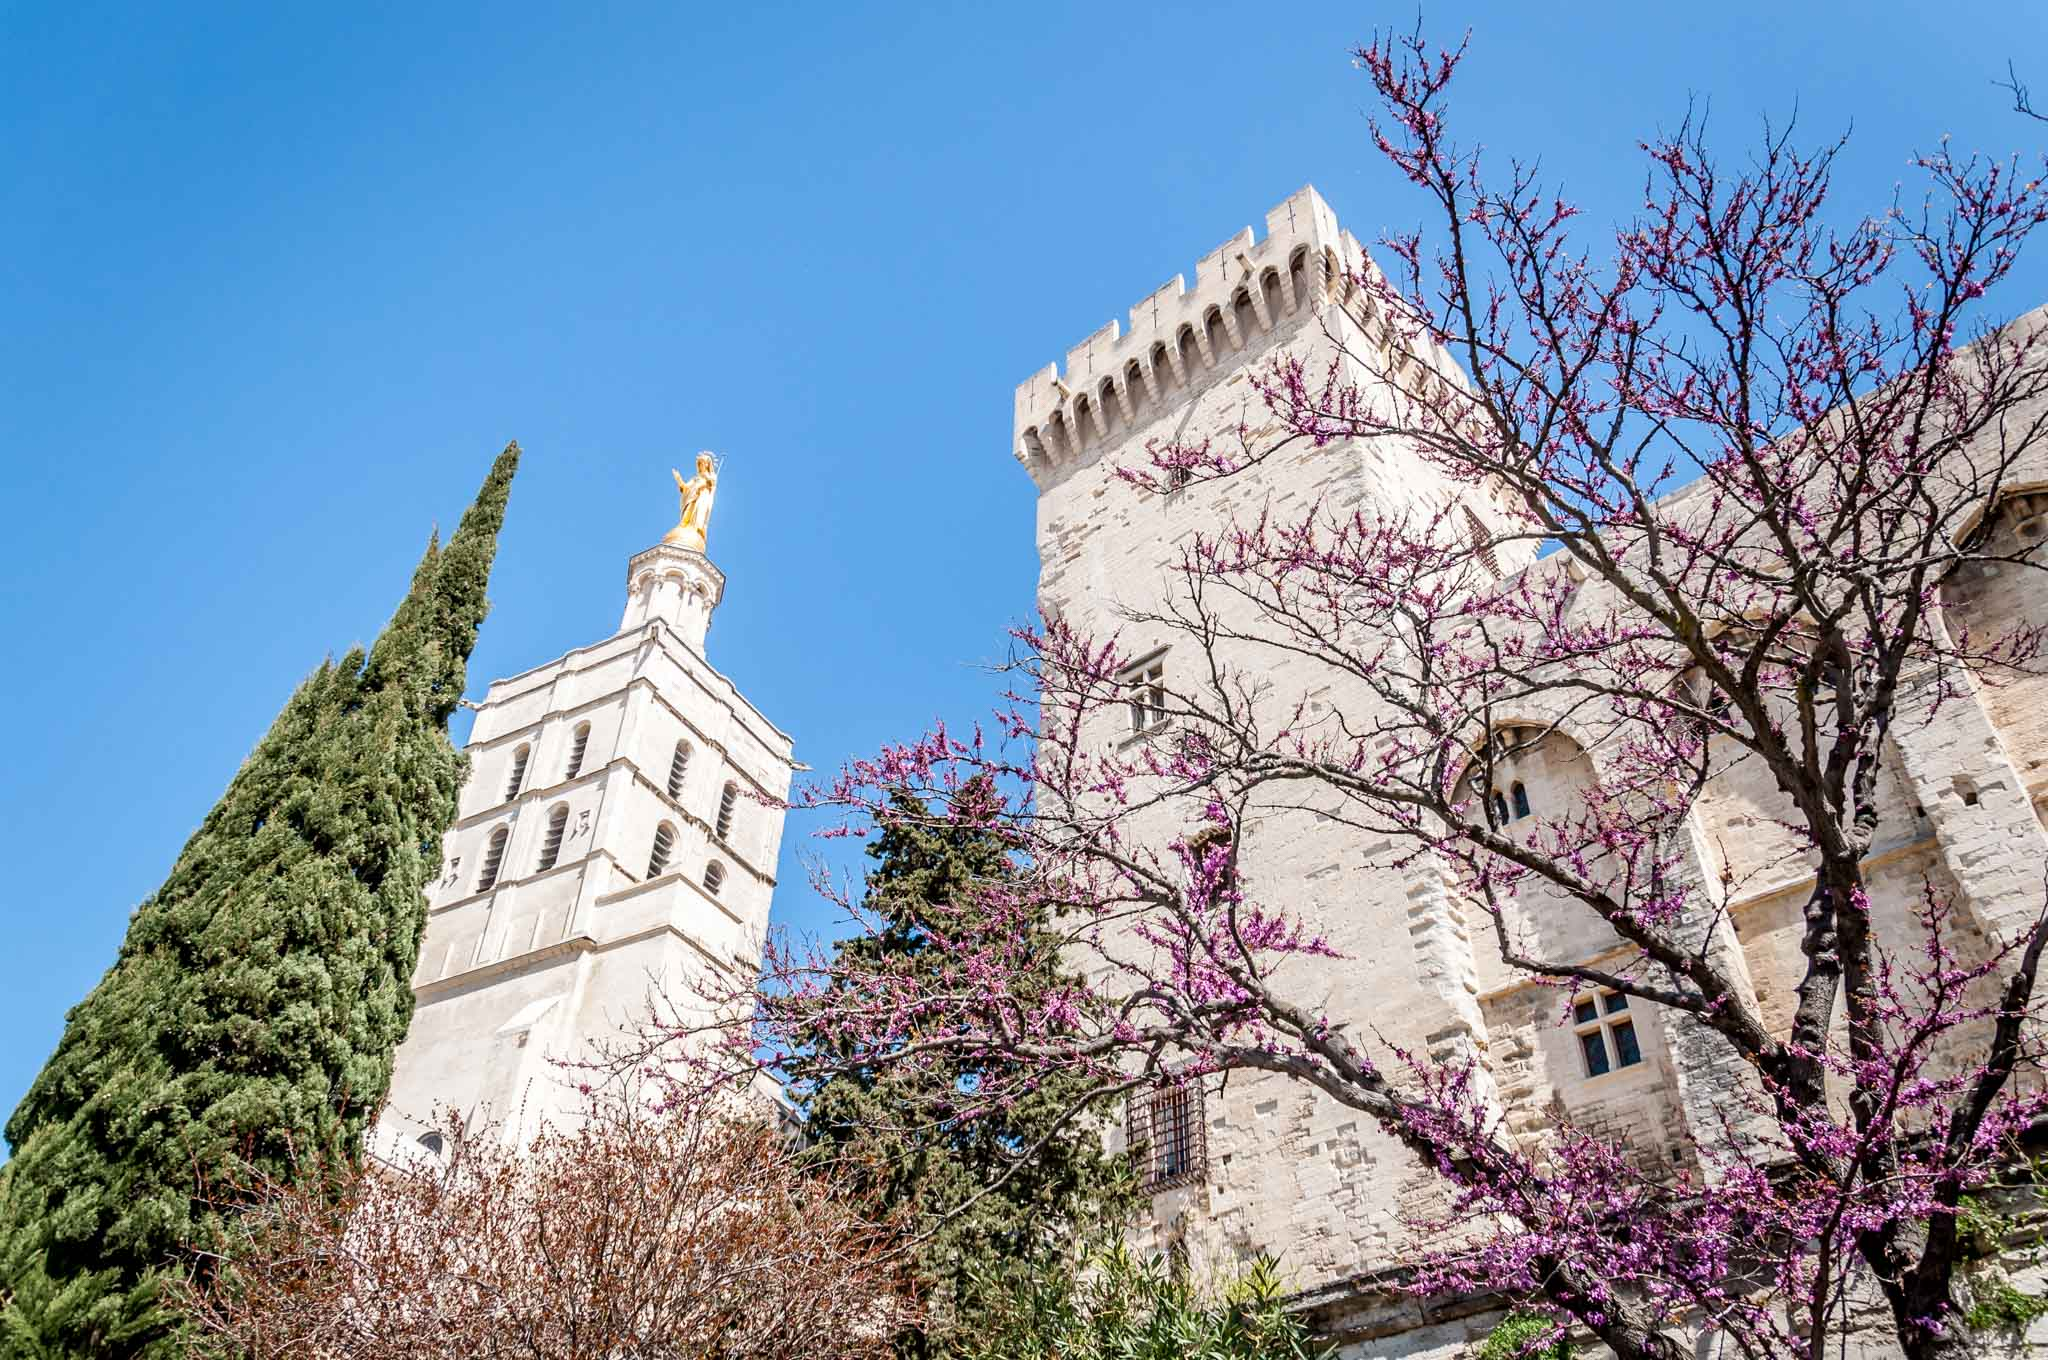 White exterior of Avignon's Palace of the Popes with trees in front